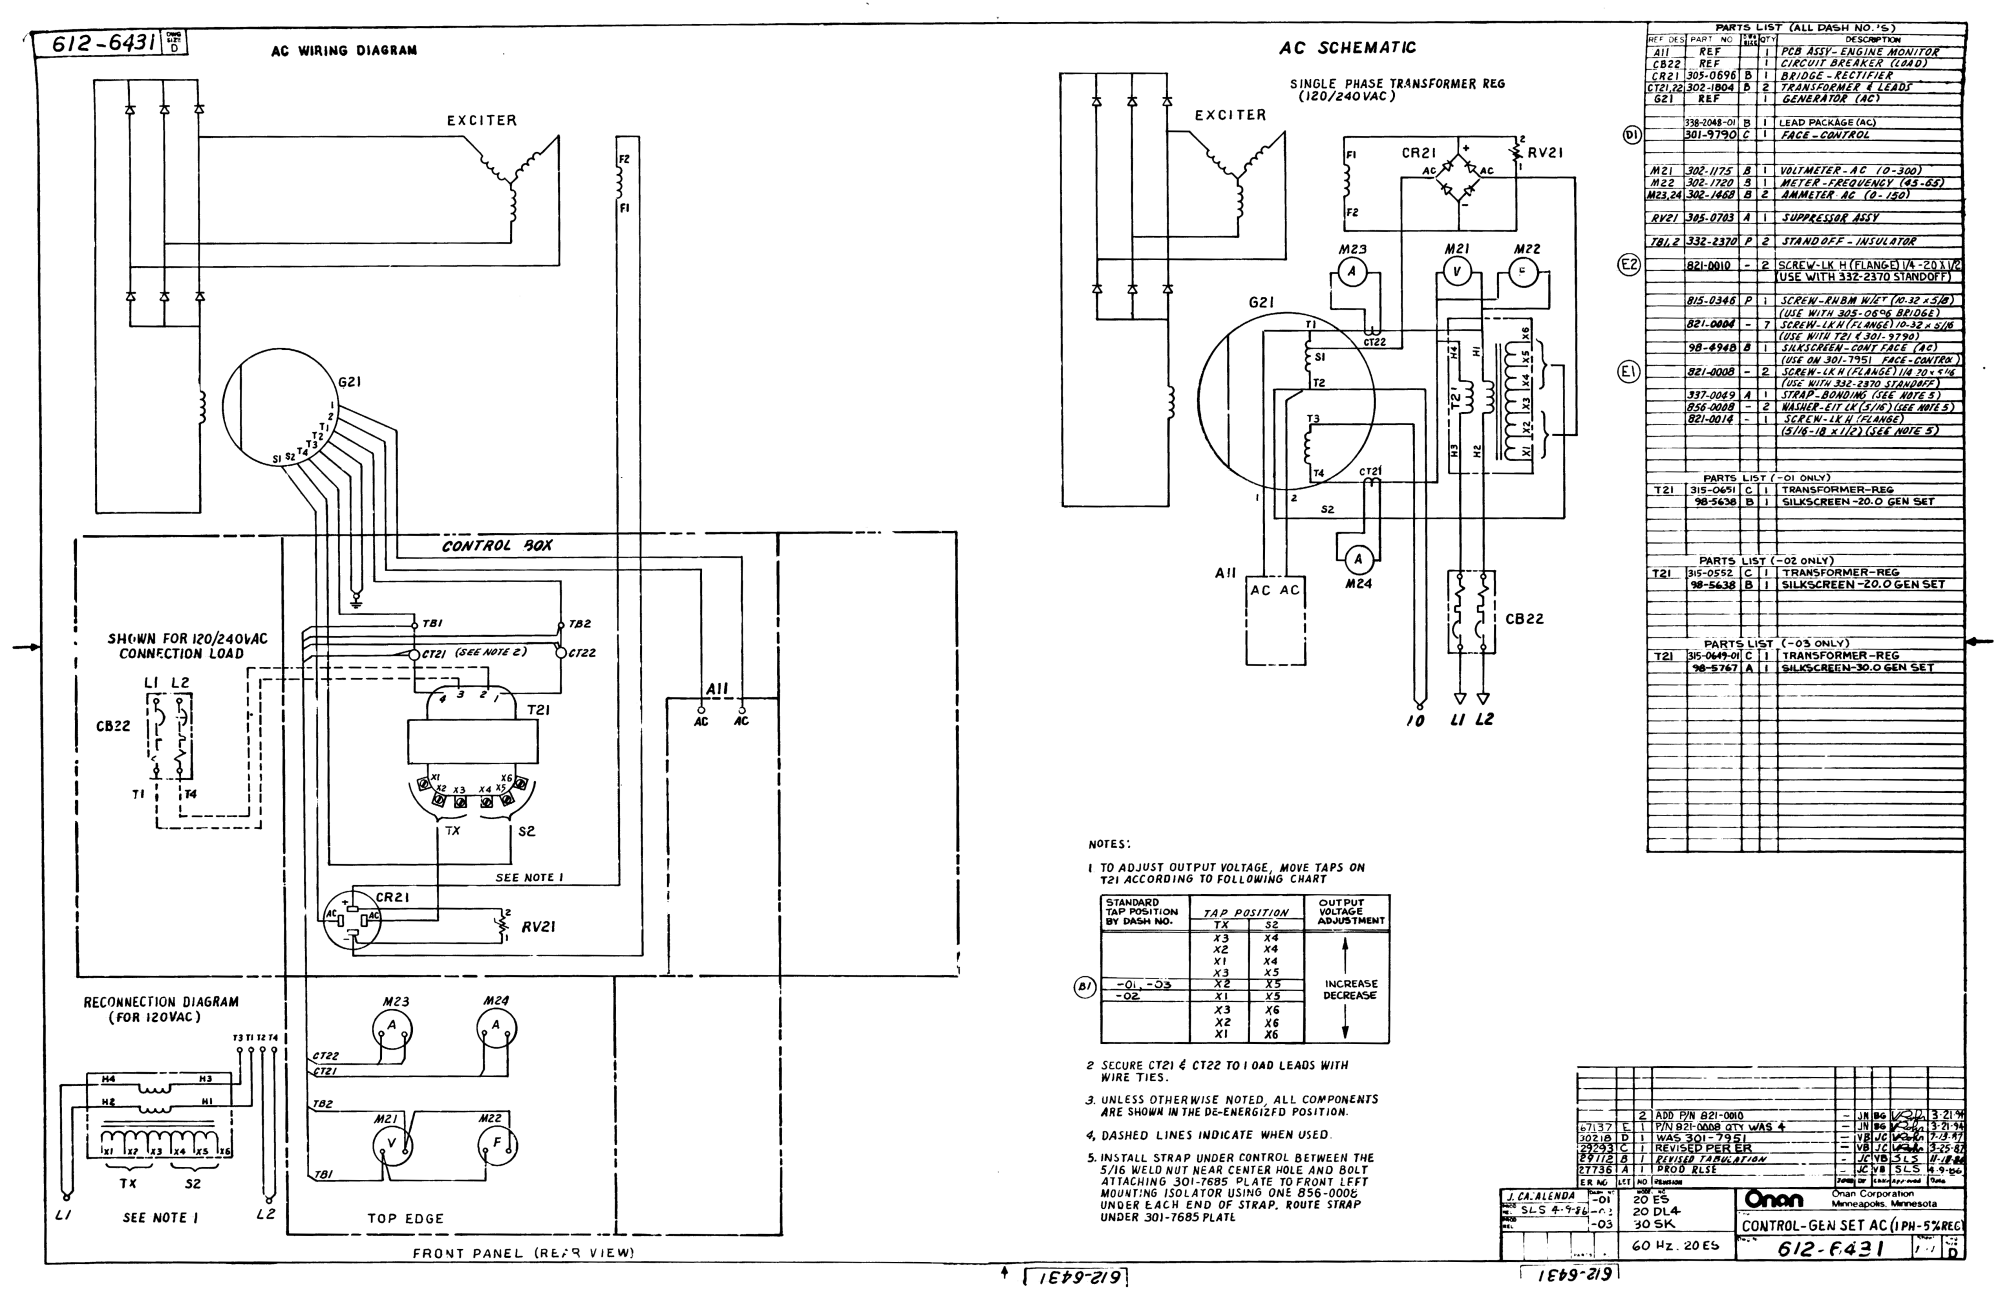 hight resolution of onan 6500 generator wiring diagram free pictu wiring library generator transfer switch wiring diagram onan generator wiring diagram 0611 1271